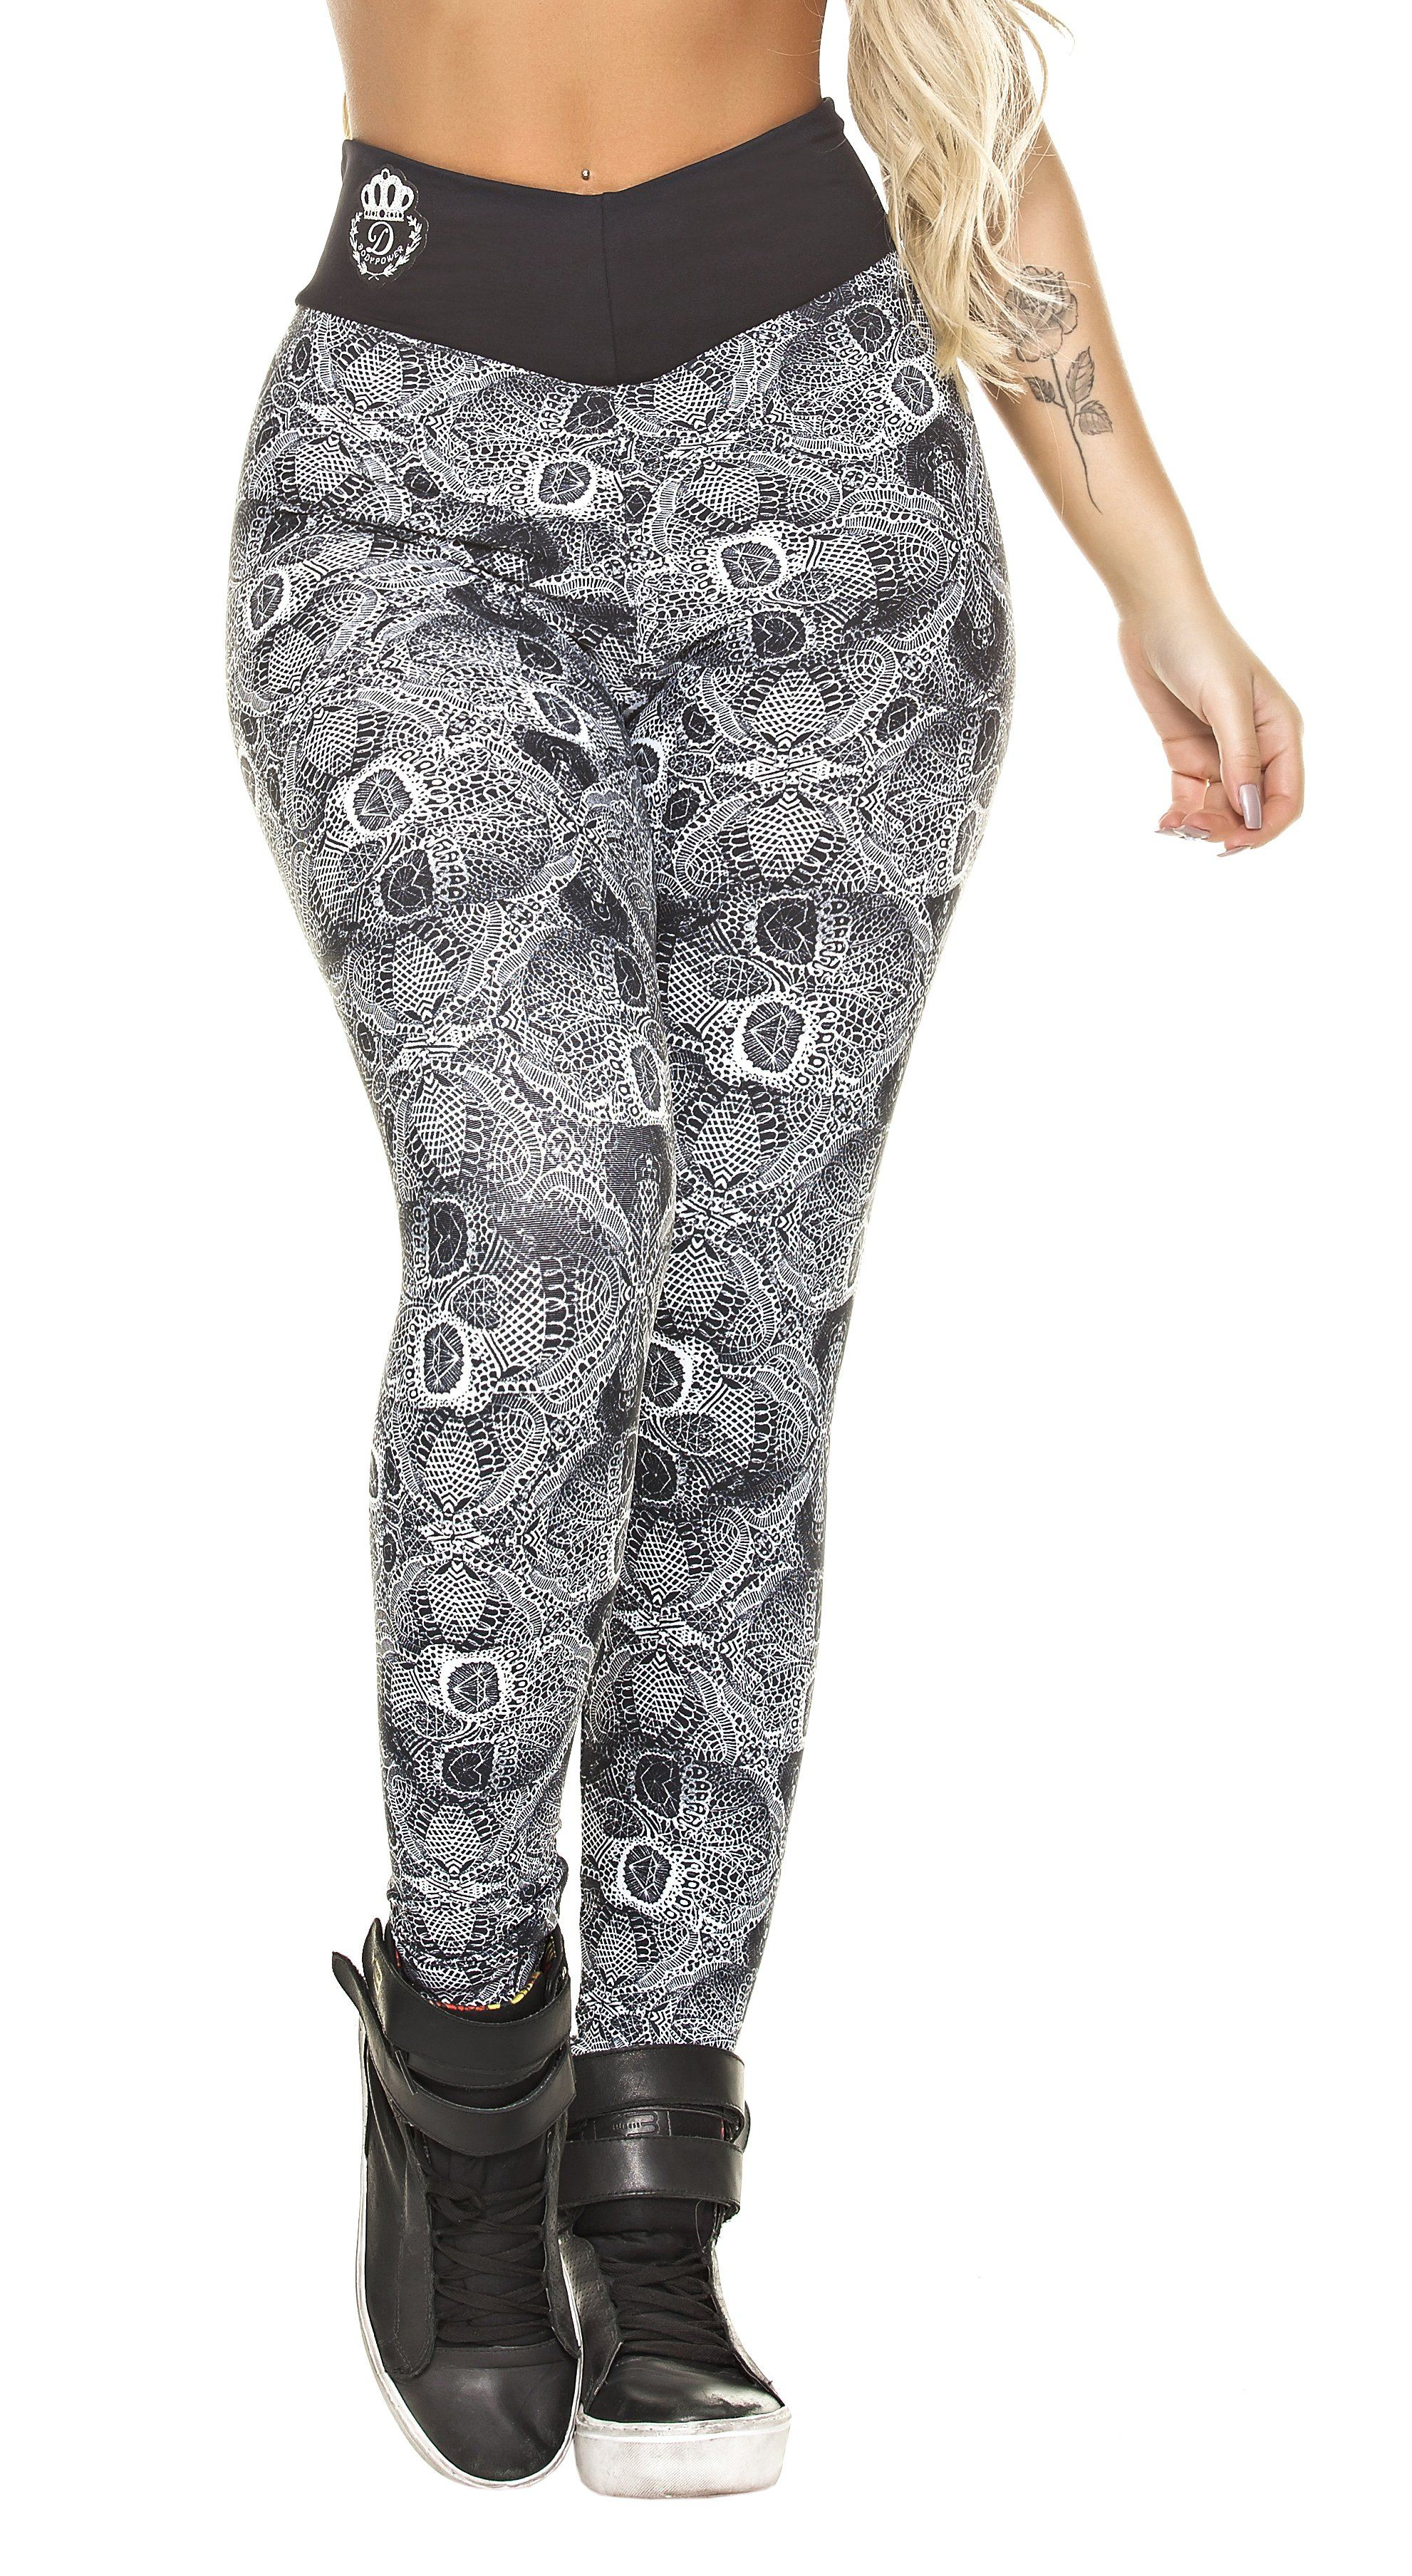 Brazilian Workout Leggings - High Waist Modern Print